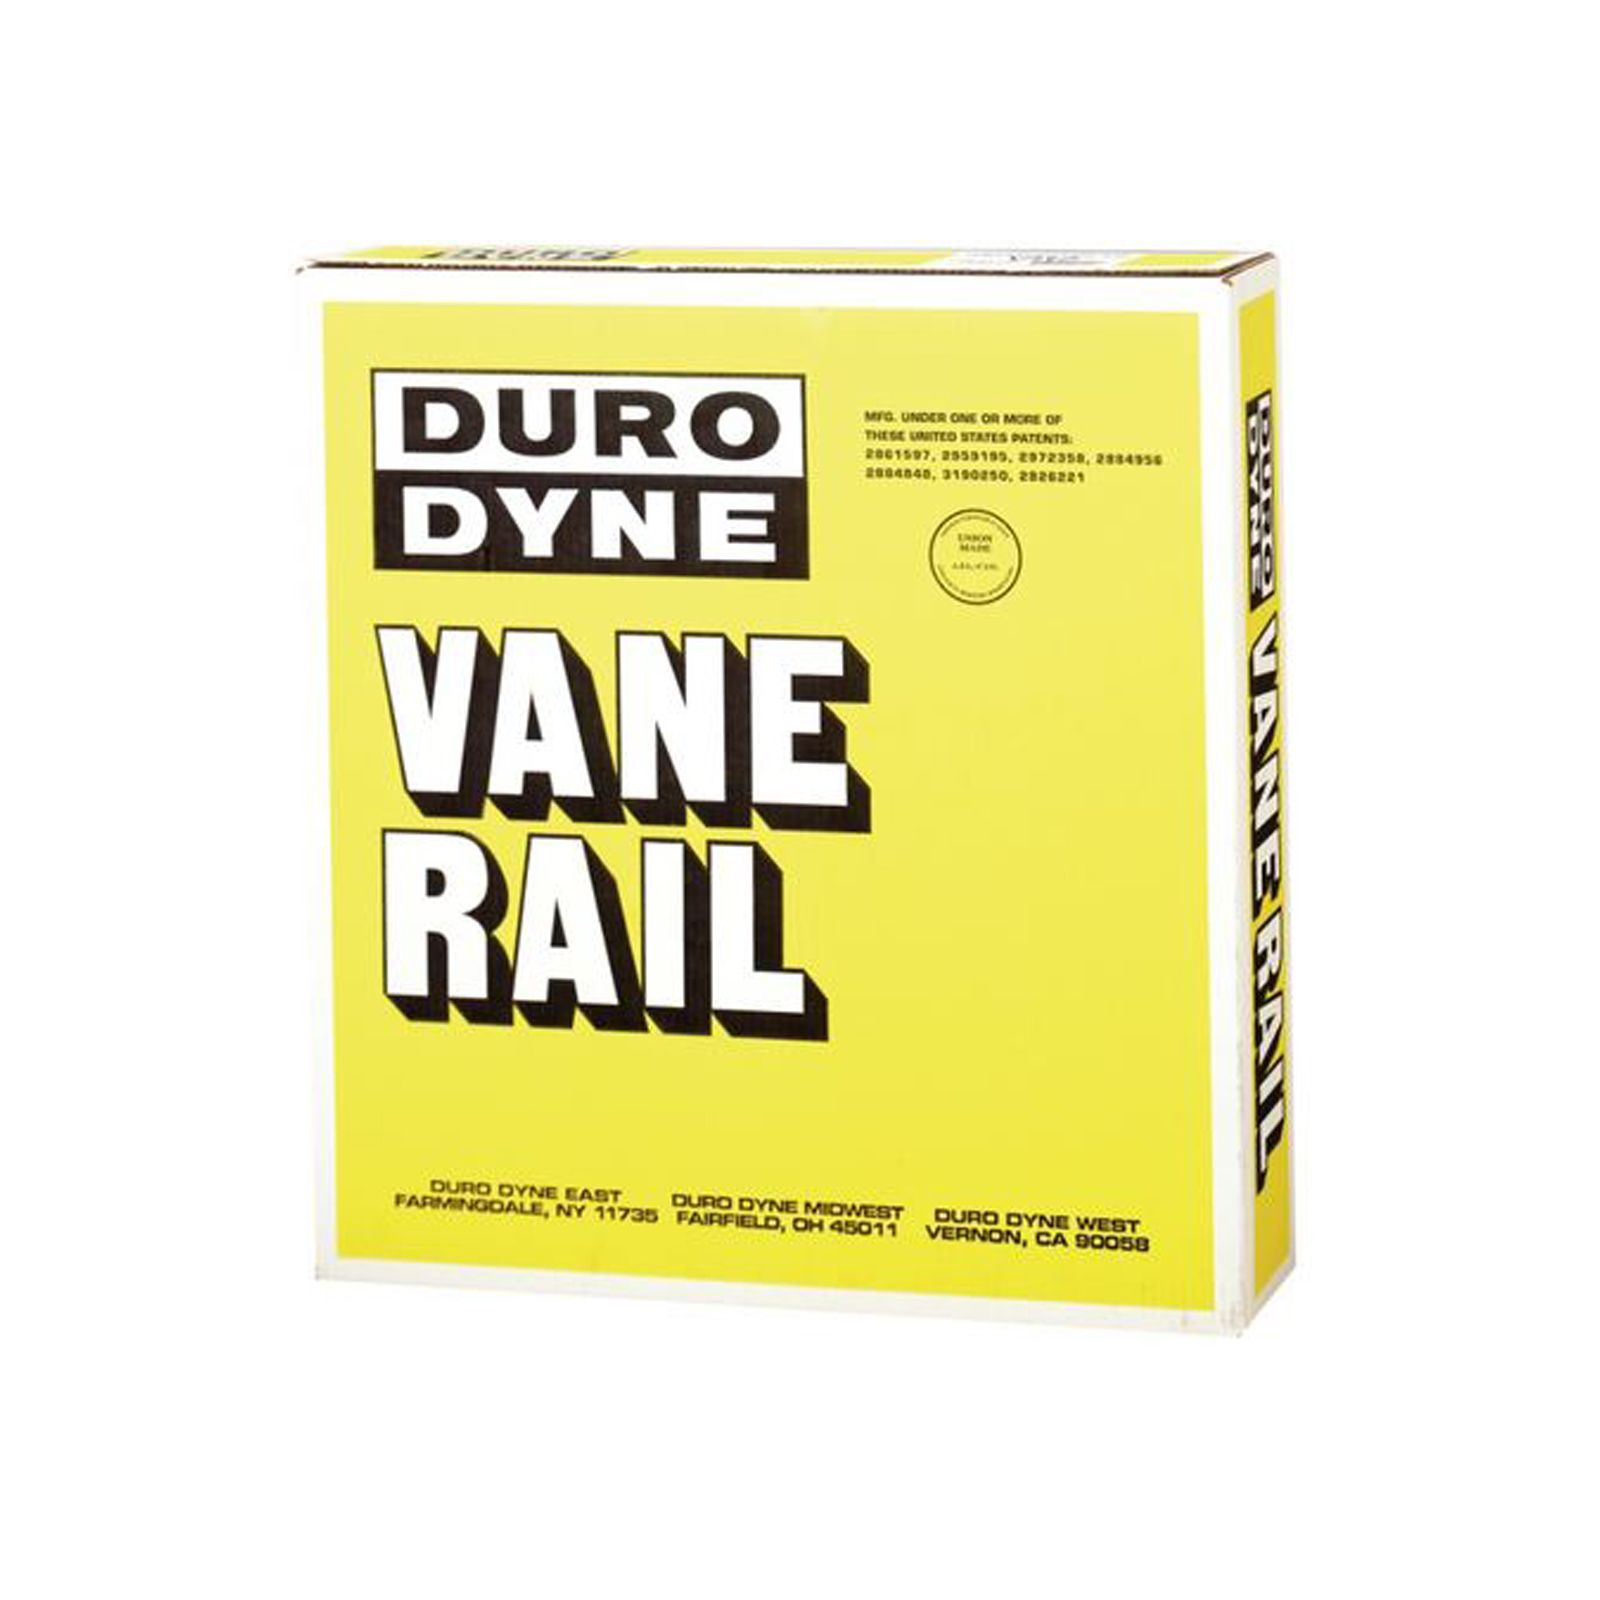 Duro Dyne 4002 -  Vane Rail With Continuous Coils, 24 Gauge, 100' Roll